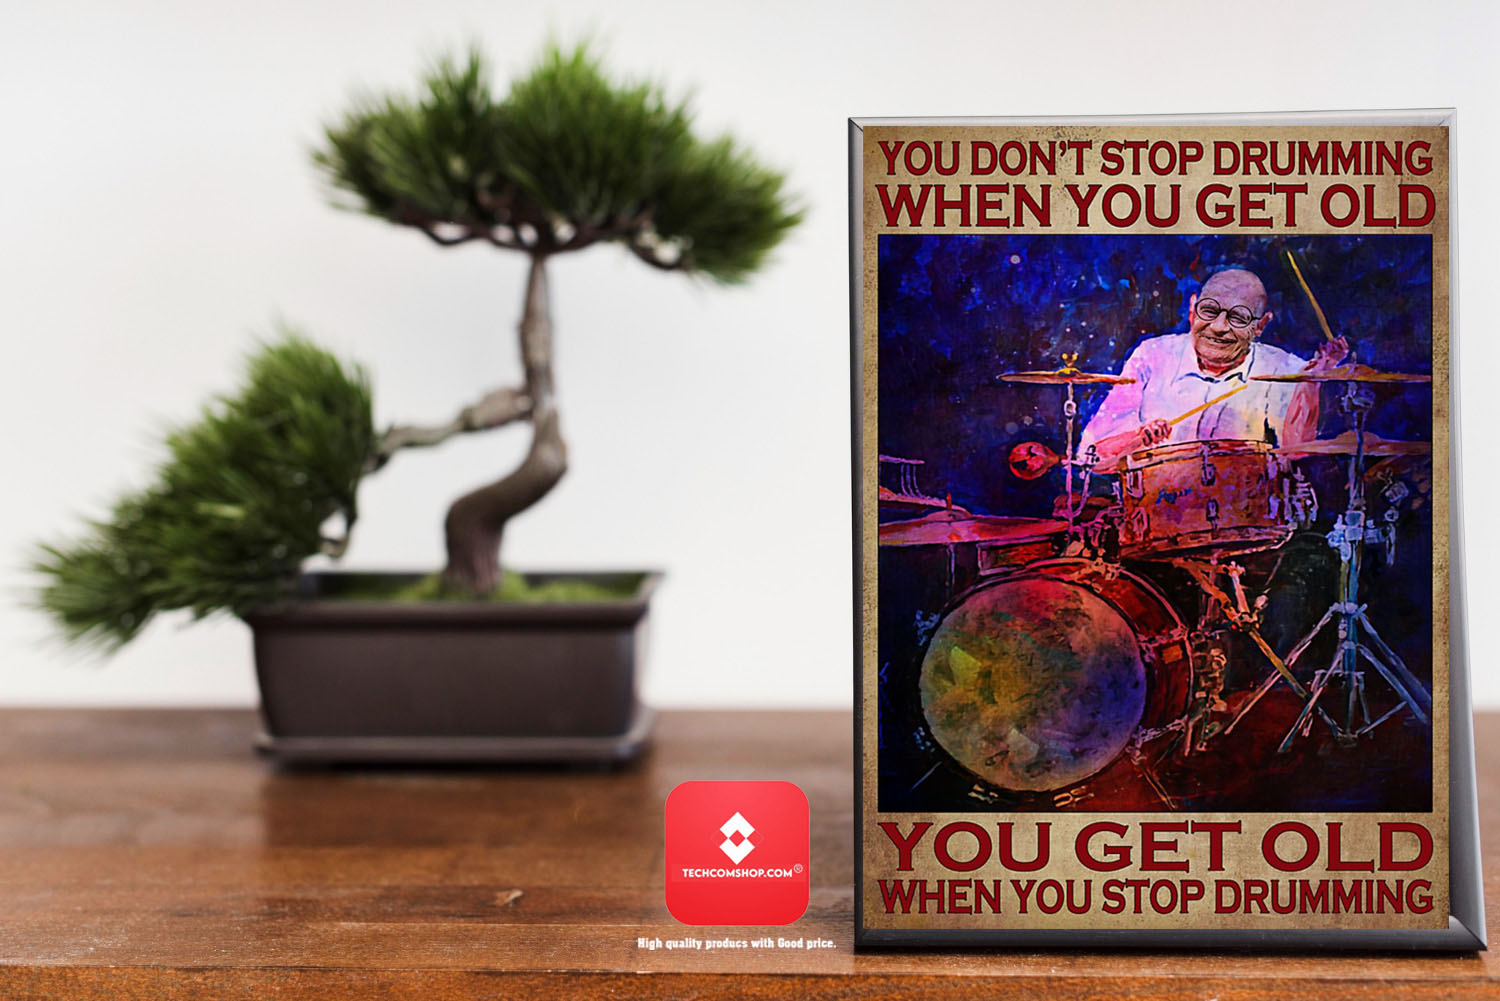 You don't stop drumming when you get old poster 8